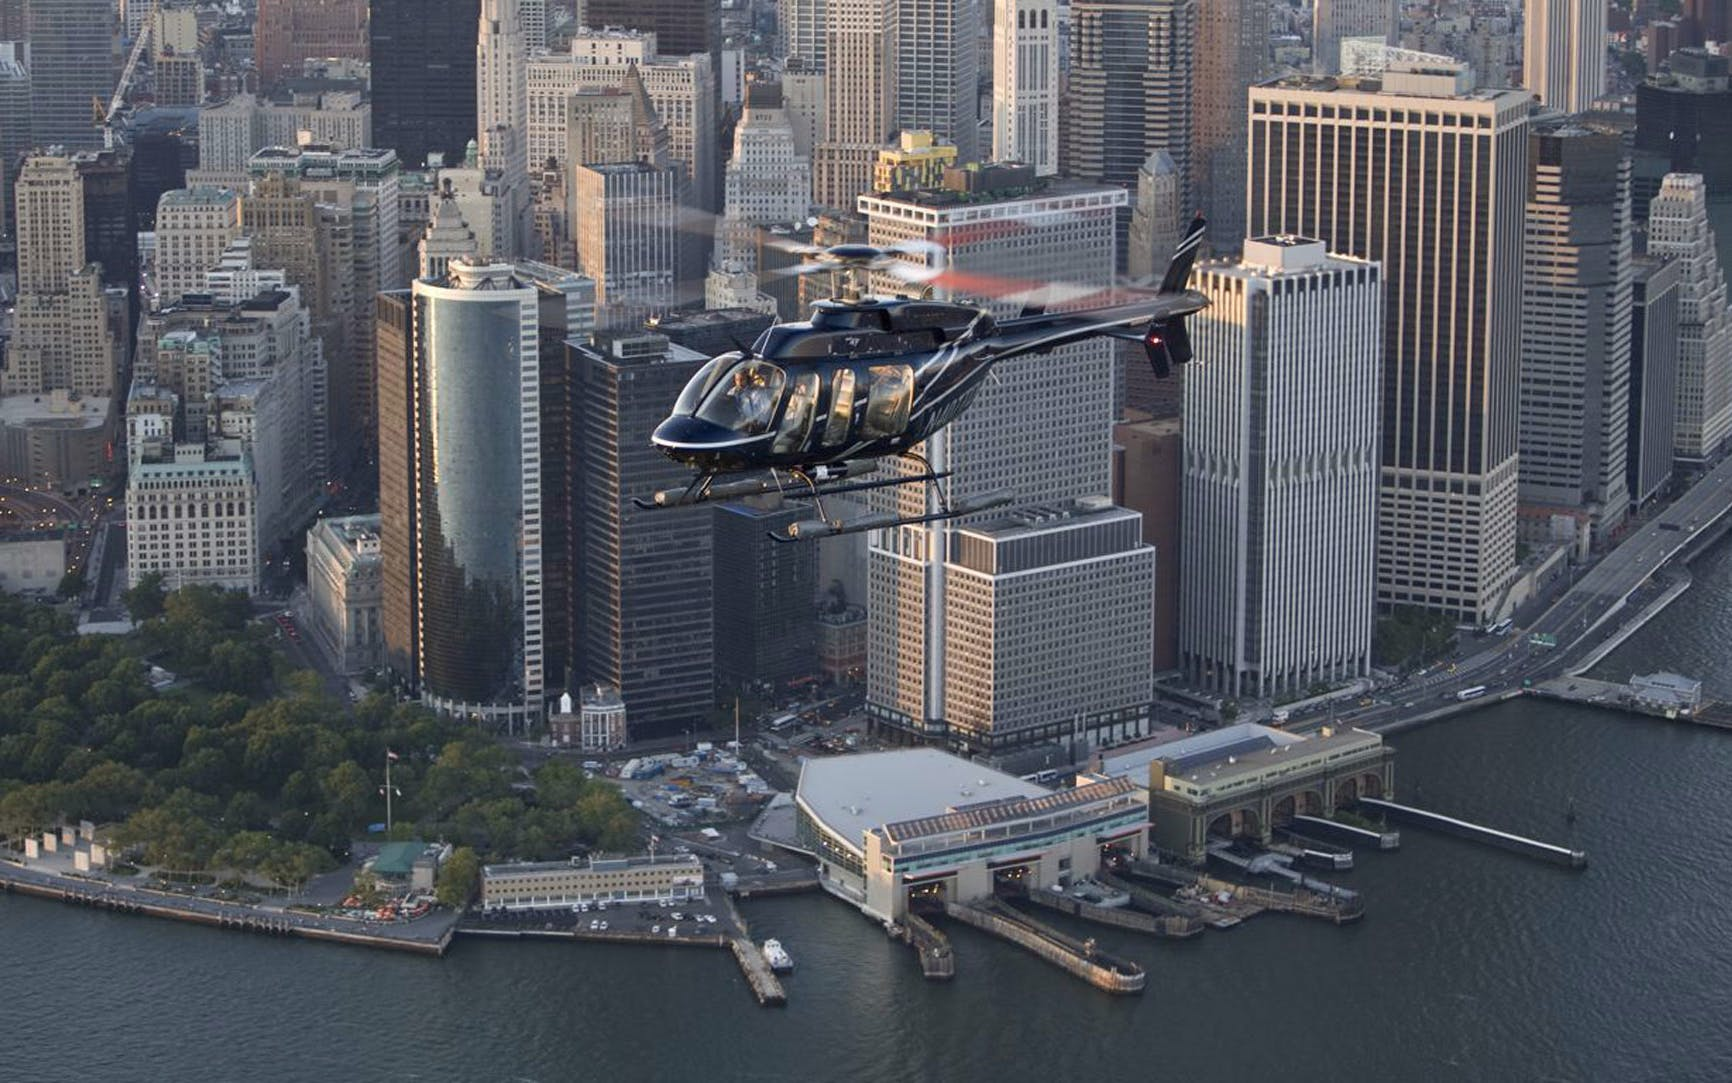 NYC Helicopter Tour - 30 minutes